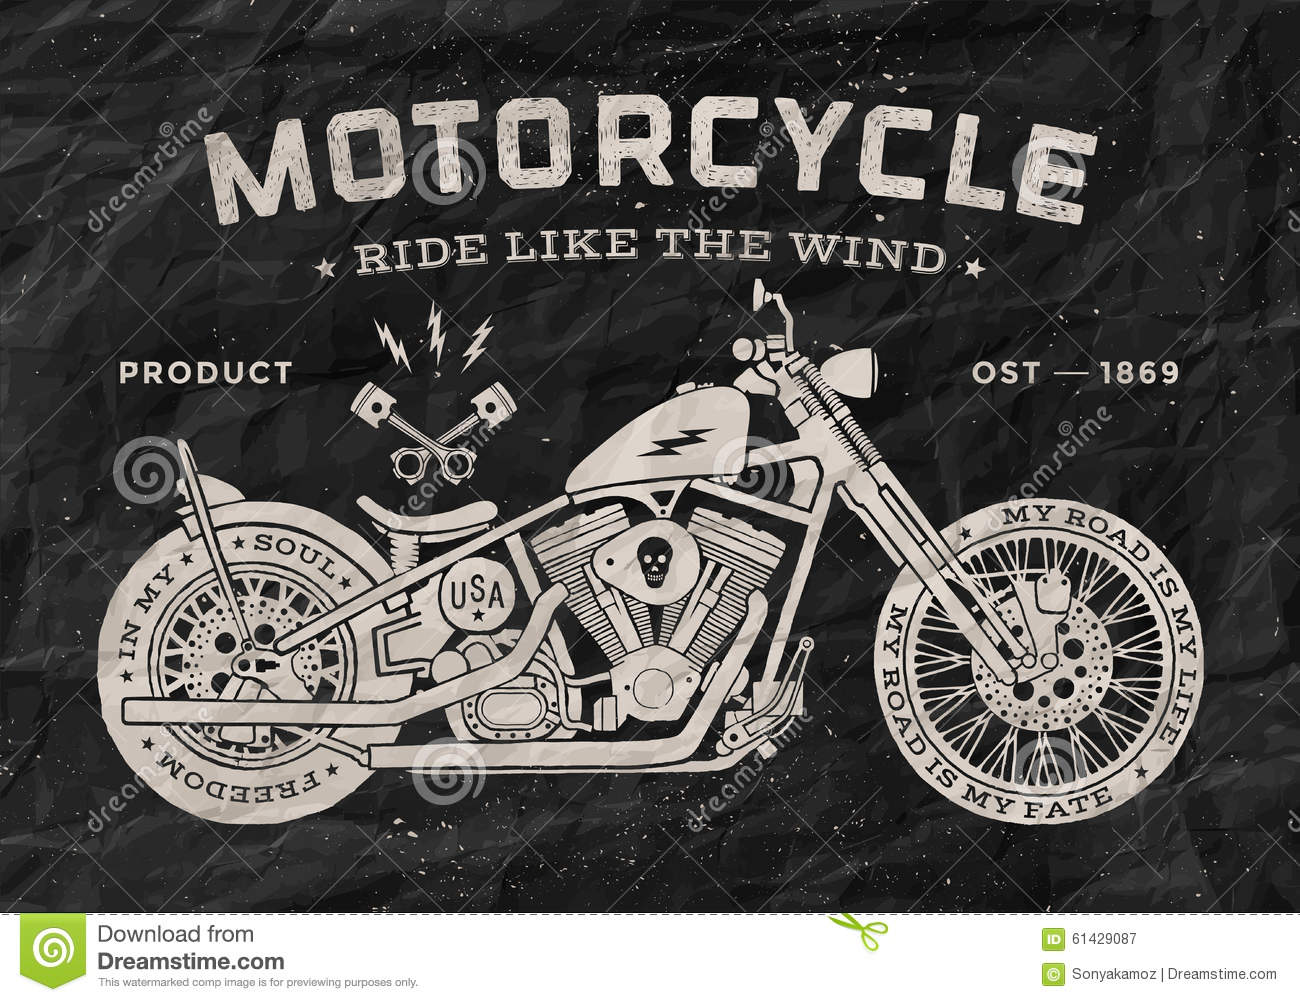 Harley Davidson Prices >> Vintage Race Motorcycle Old School Style. Black Stock Vector - Image: 61429087